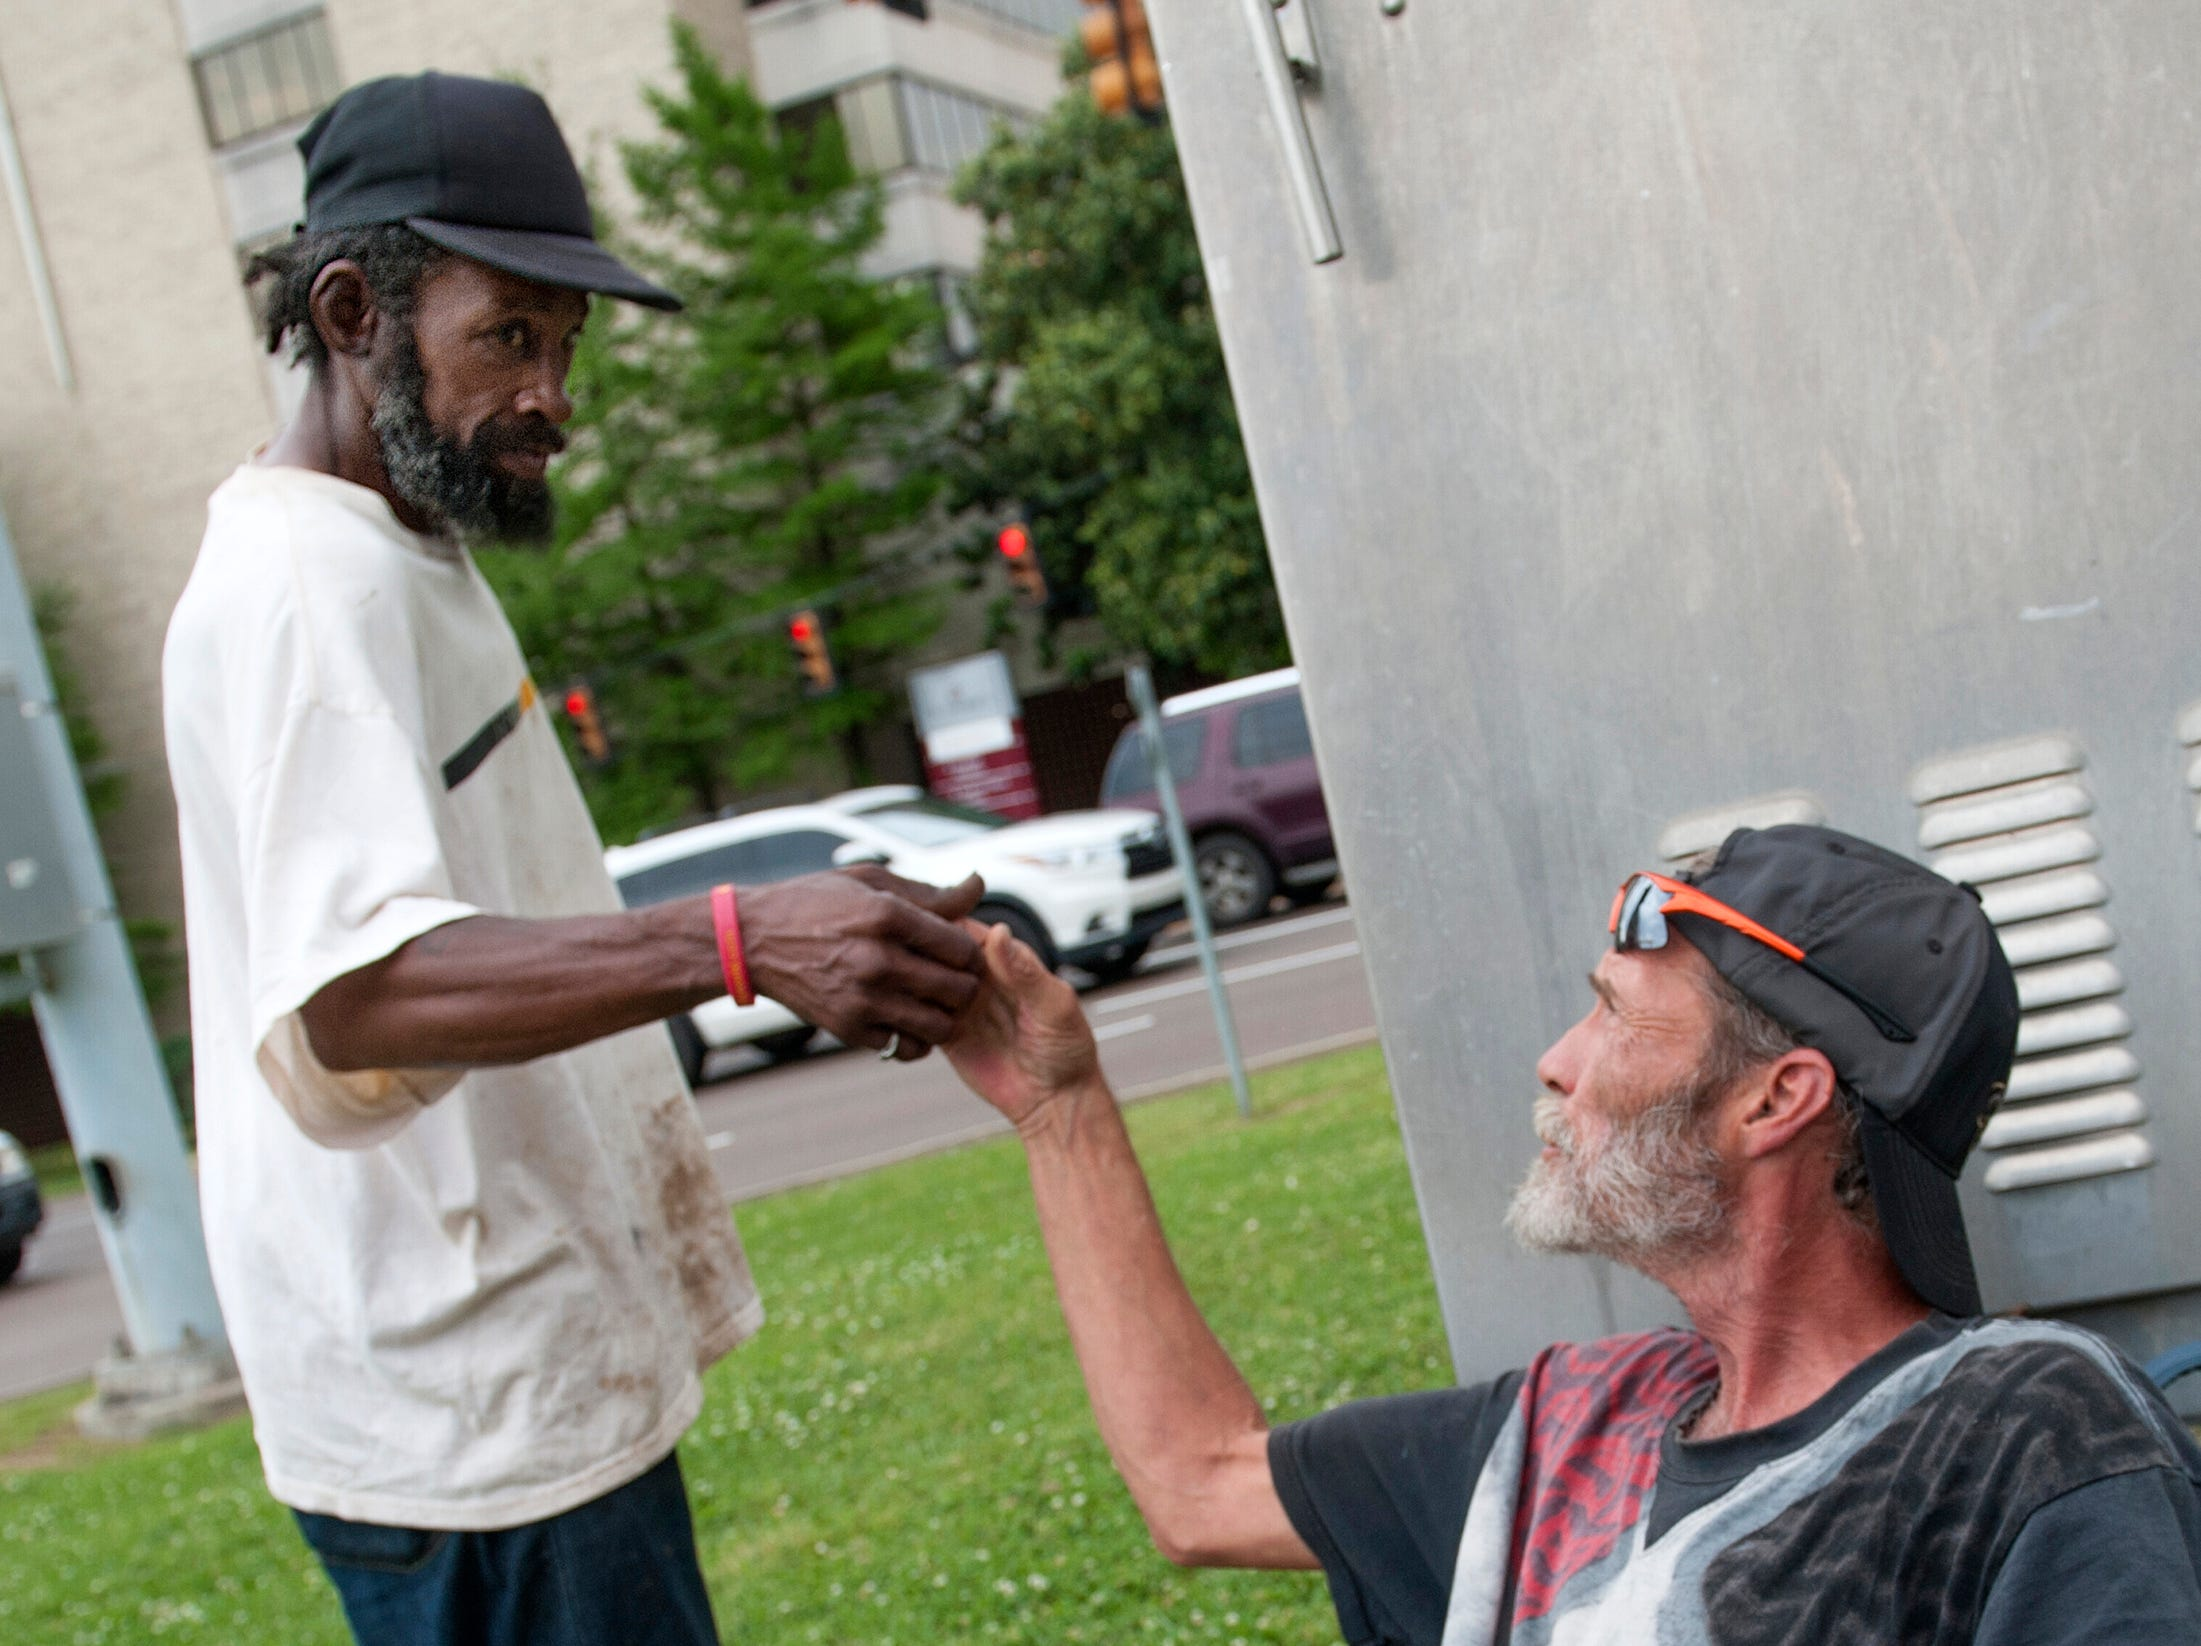 When he got the money he needed to pay for food for the day, Dan, left, walked across the street to let Jeffery know he was done and that the corner was his to work.